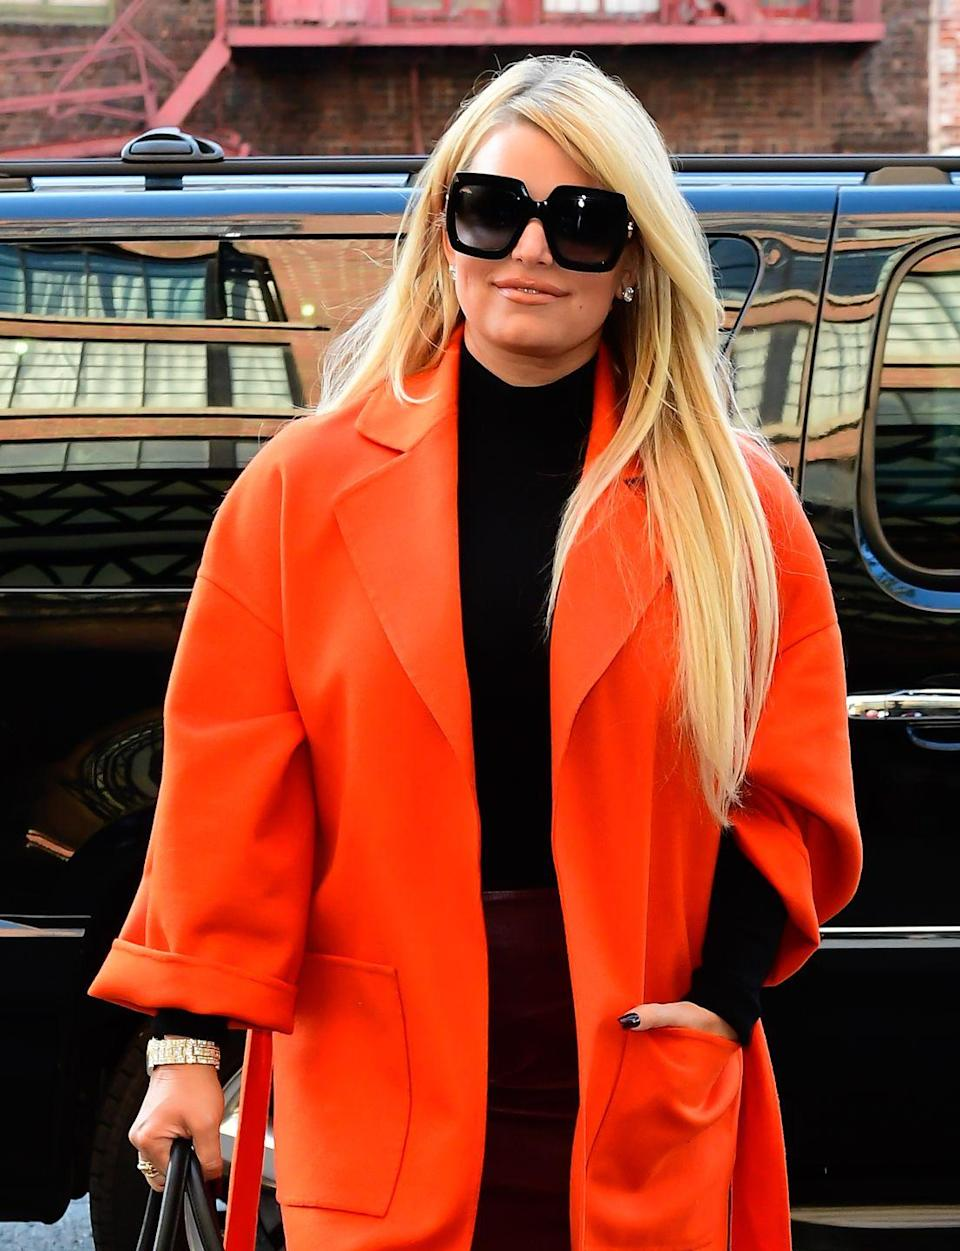 <p>In Jessica Simpson's book, she details how being sexually abused as a child lead her to self-medicate with alcohol. <br></p><p>After hitting 'rock bottom', Jessica said she got sober in November 2017 and has found a new lease of life since. <br></p><p>Now, Jessica calls sobriety and her clarity on life 'a continual gift [...] When I finally said I needed help, it was like I was that little girl <br>that found her calling again in life,' she said. 'I found direction and <br>that was to walk straight ahead with no fear.'</p>